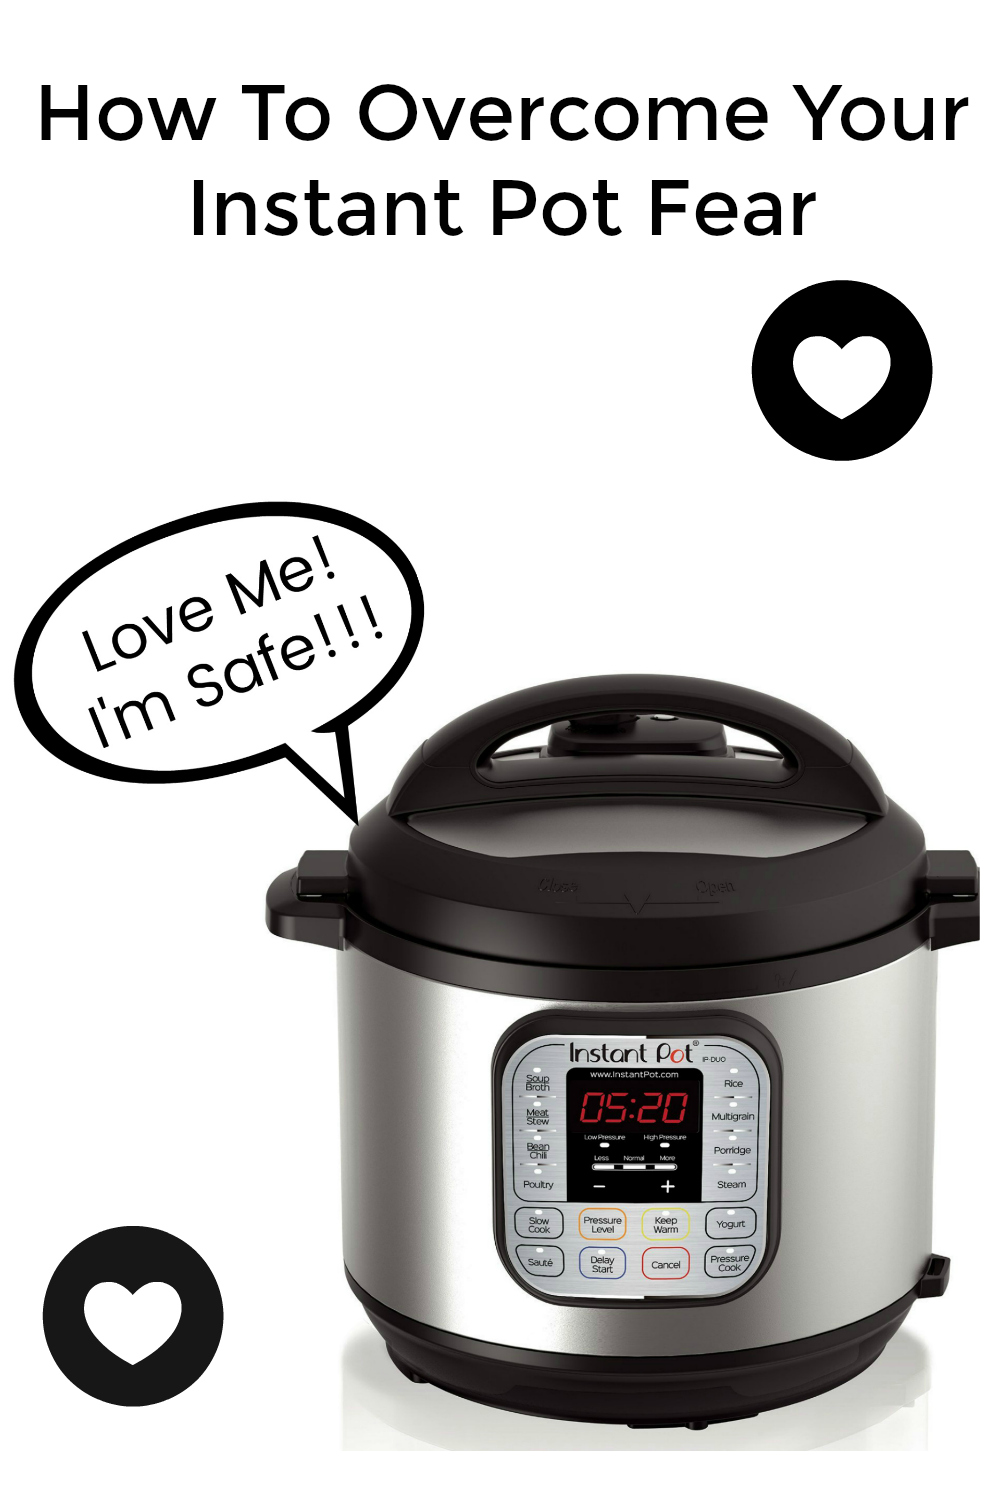 How to Overcome Instant Pot Fear